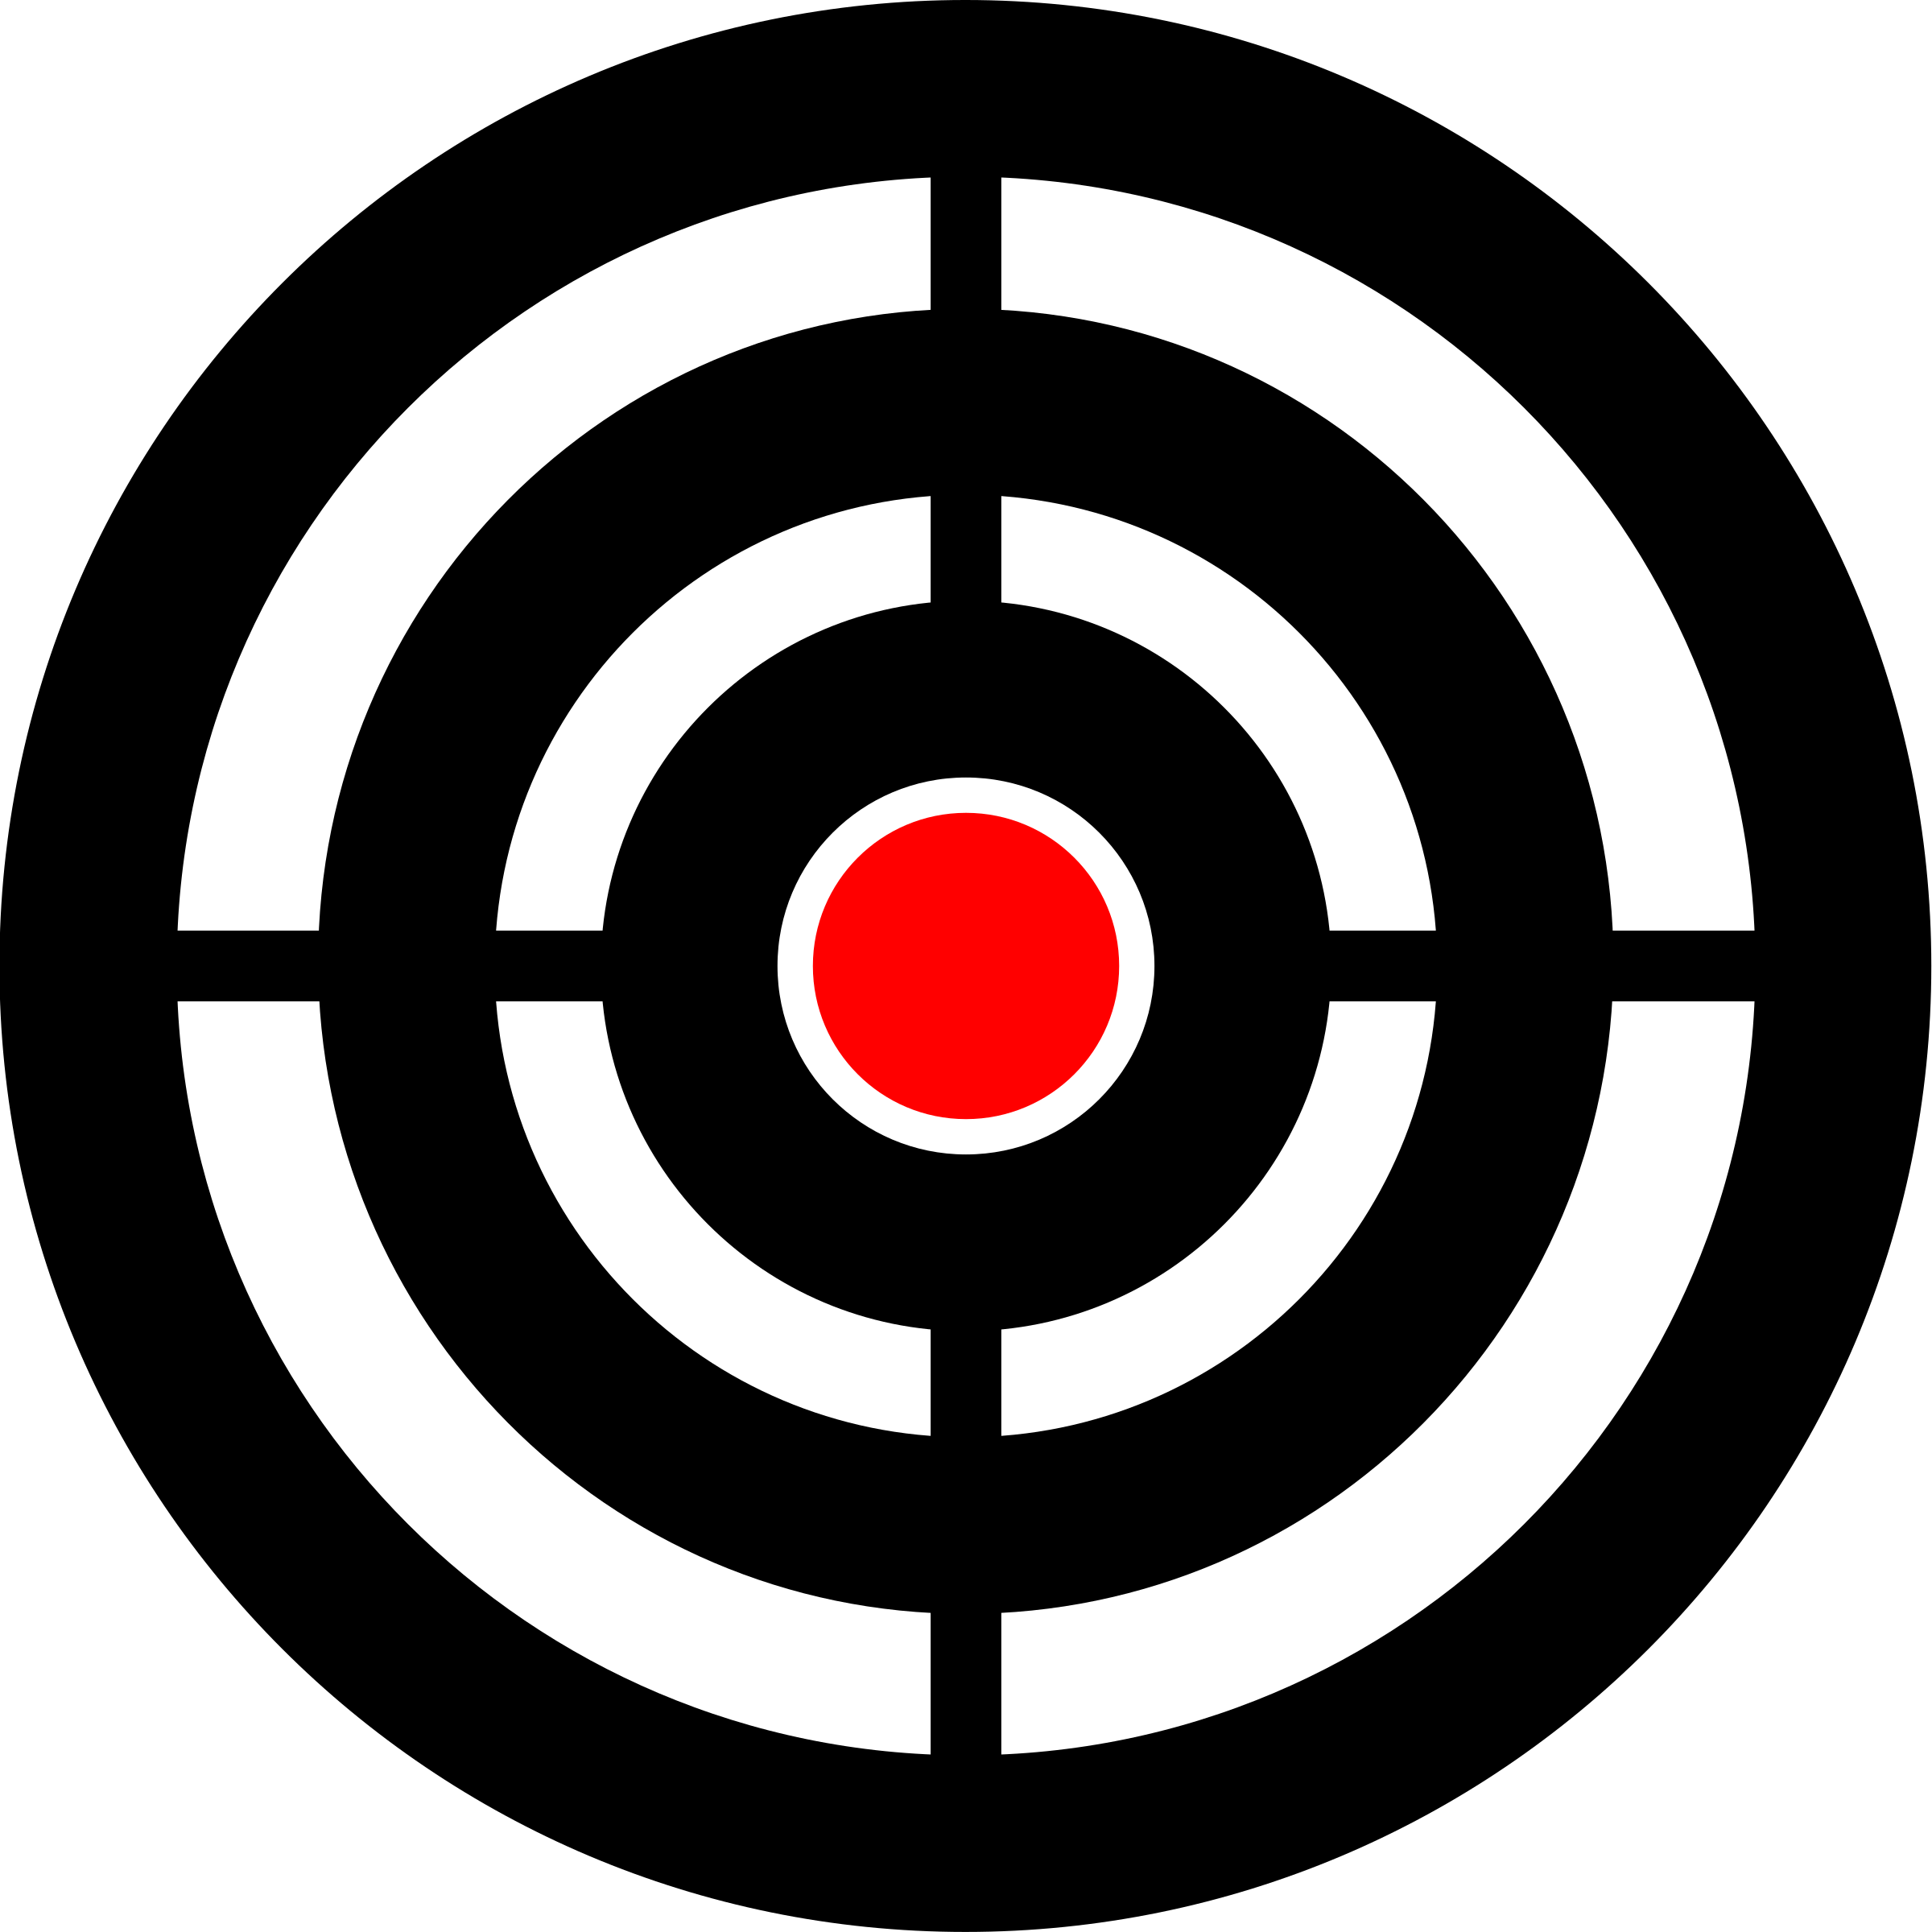 Laser Tag Target Clip Art Target 20clipart Pictures to pin on ...